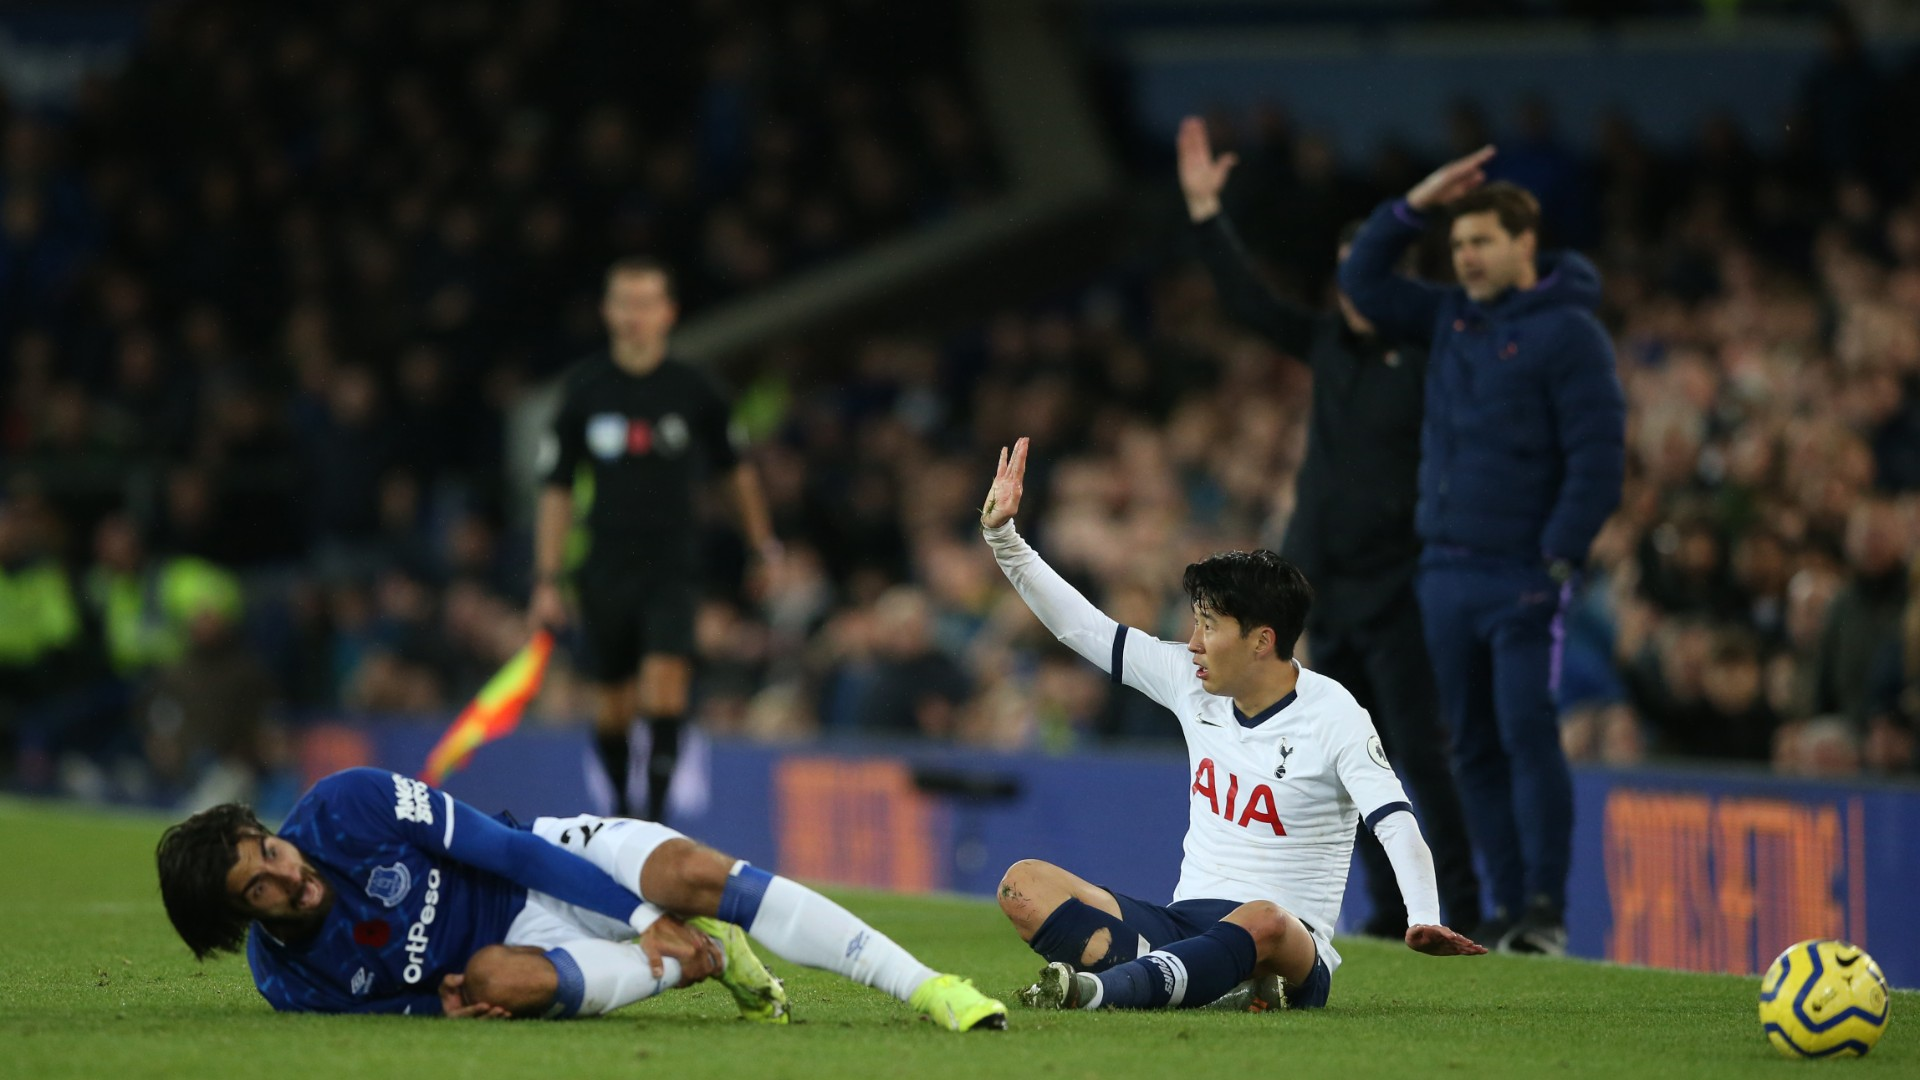 Everton-Tottenham, terribile infortunio per André Gomes: Son scoppia in lacrime